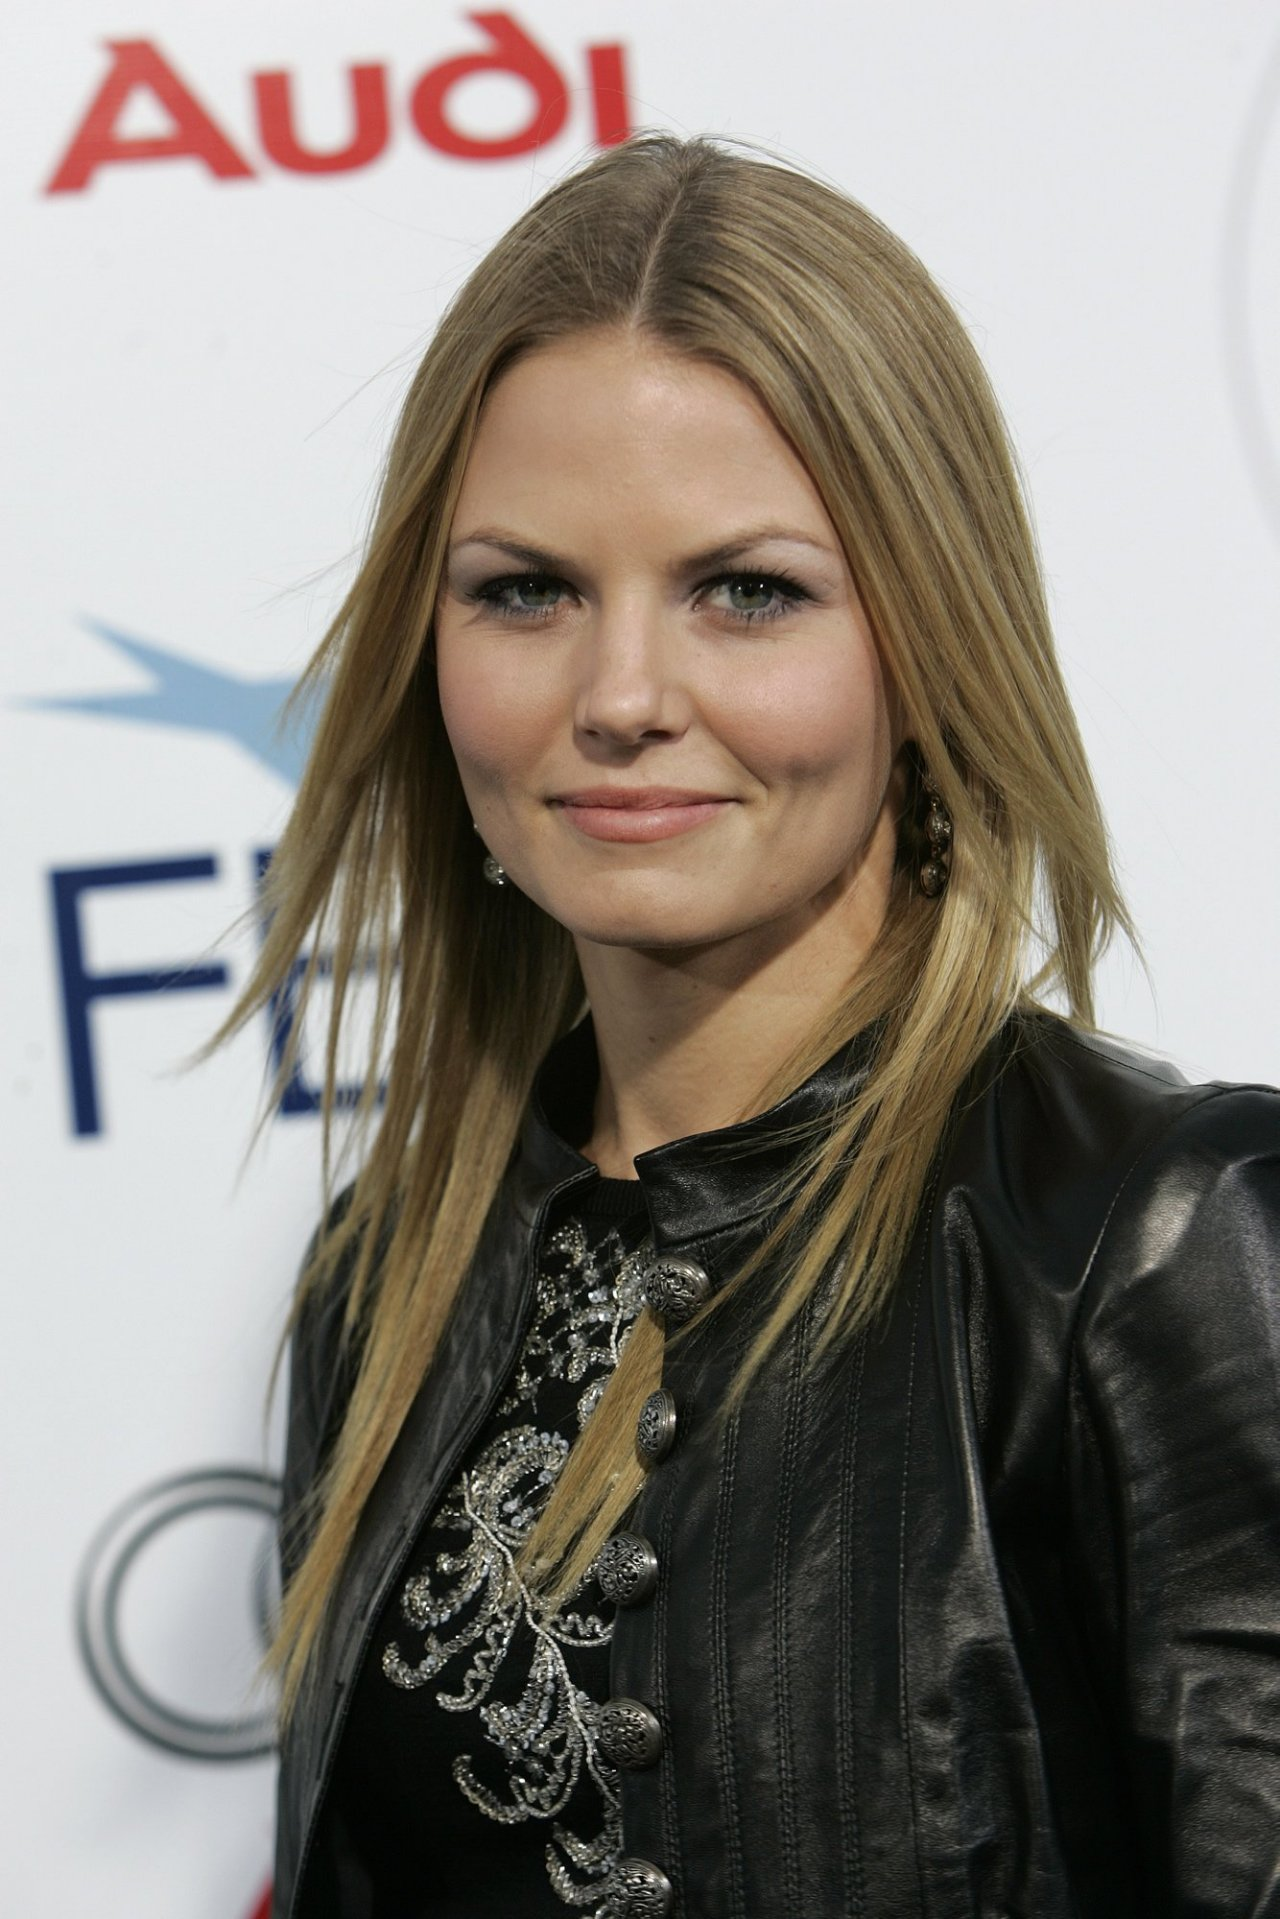 Photo Jennifer Morrison - Wallpapers with a celebrity ...: http://ua-dreams.com/celebrity/jennifer-morrison/sygp.html